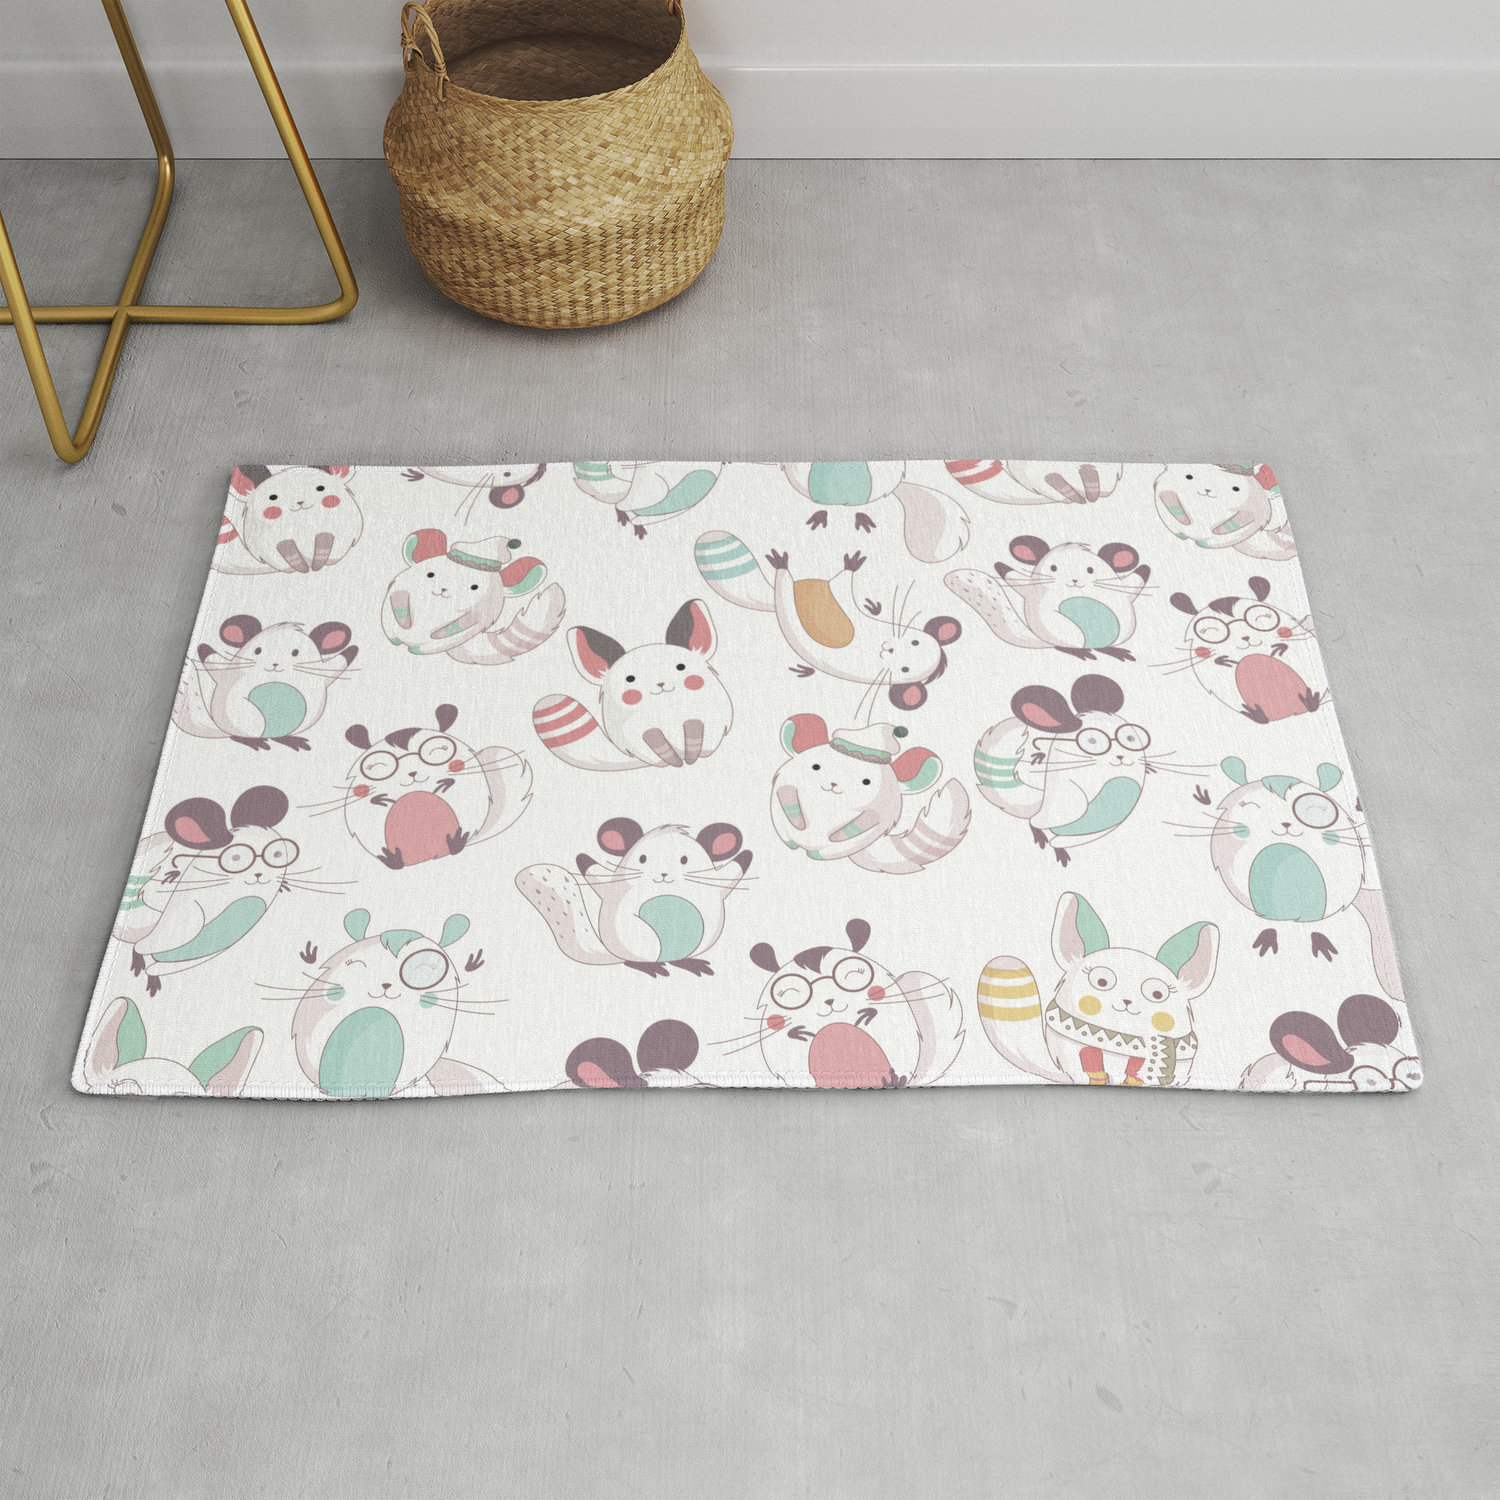 Champion Cute Rug By Original Wicked